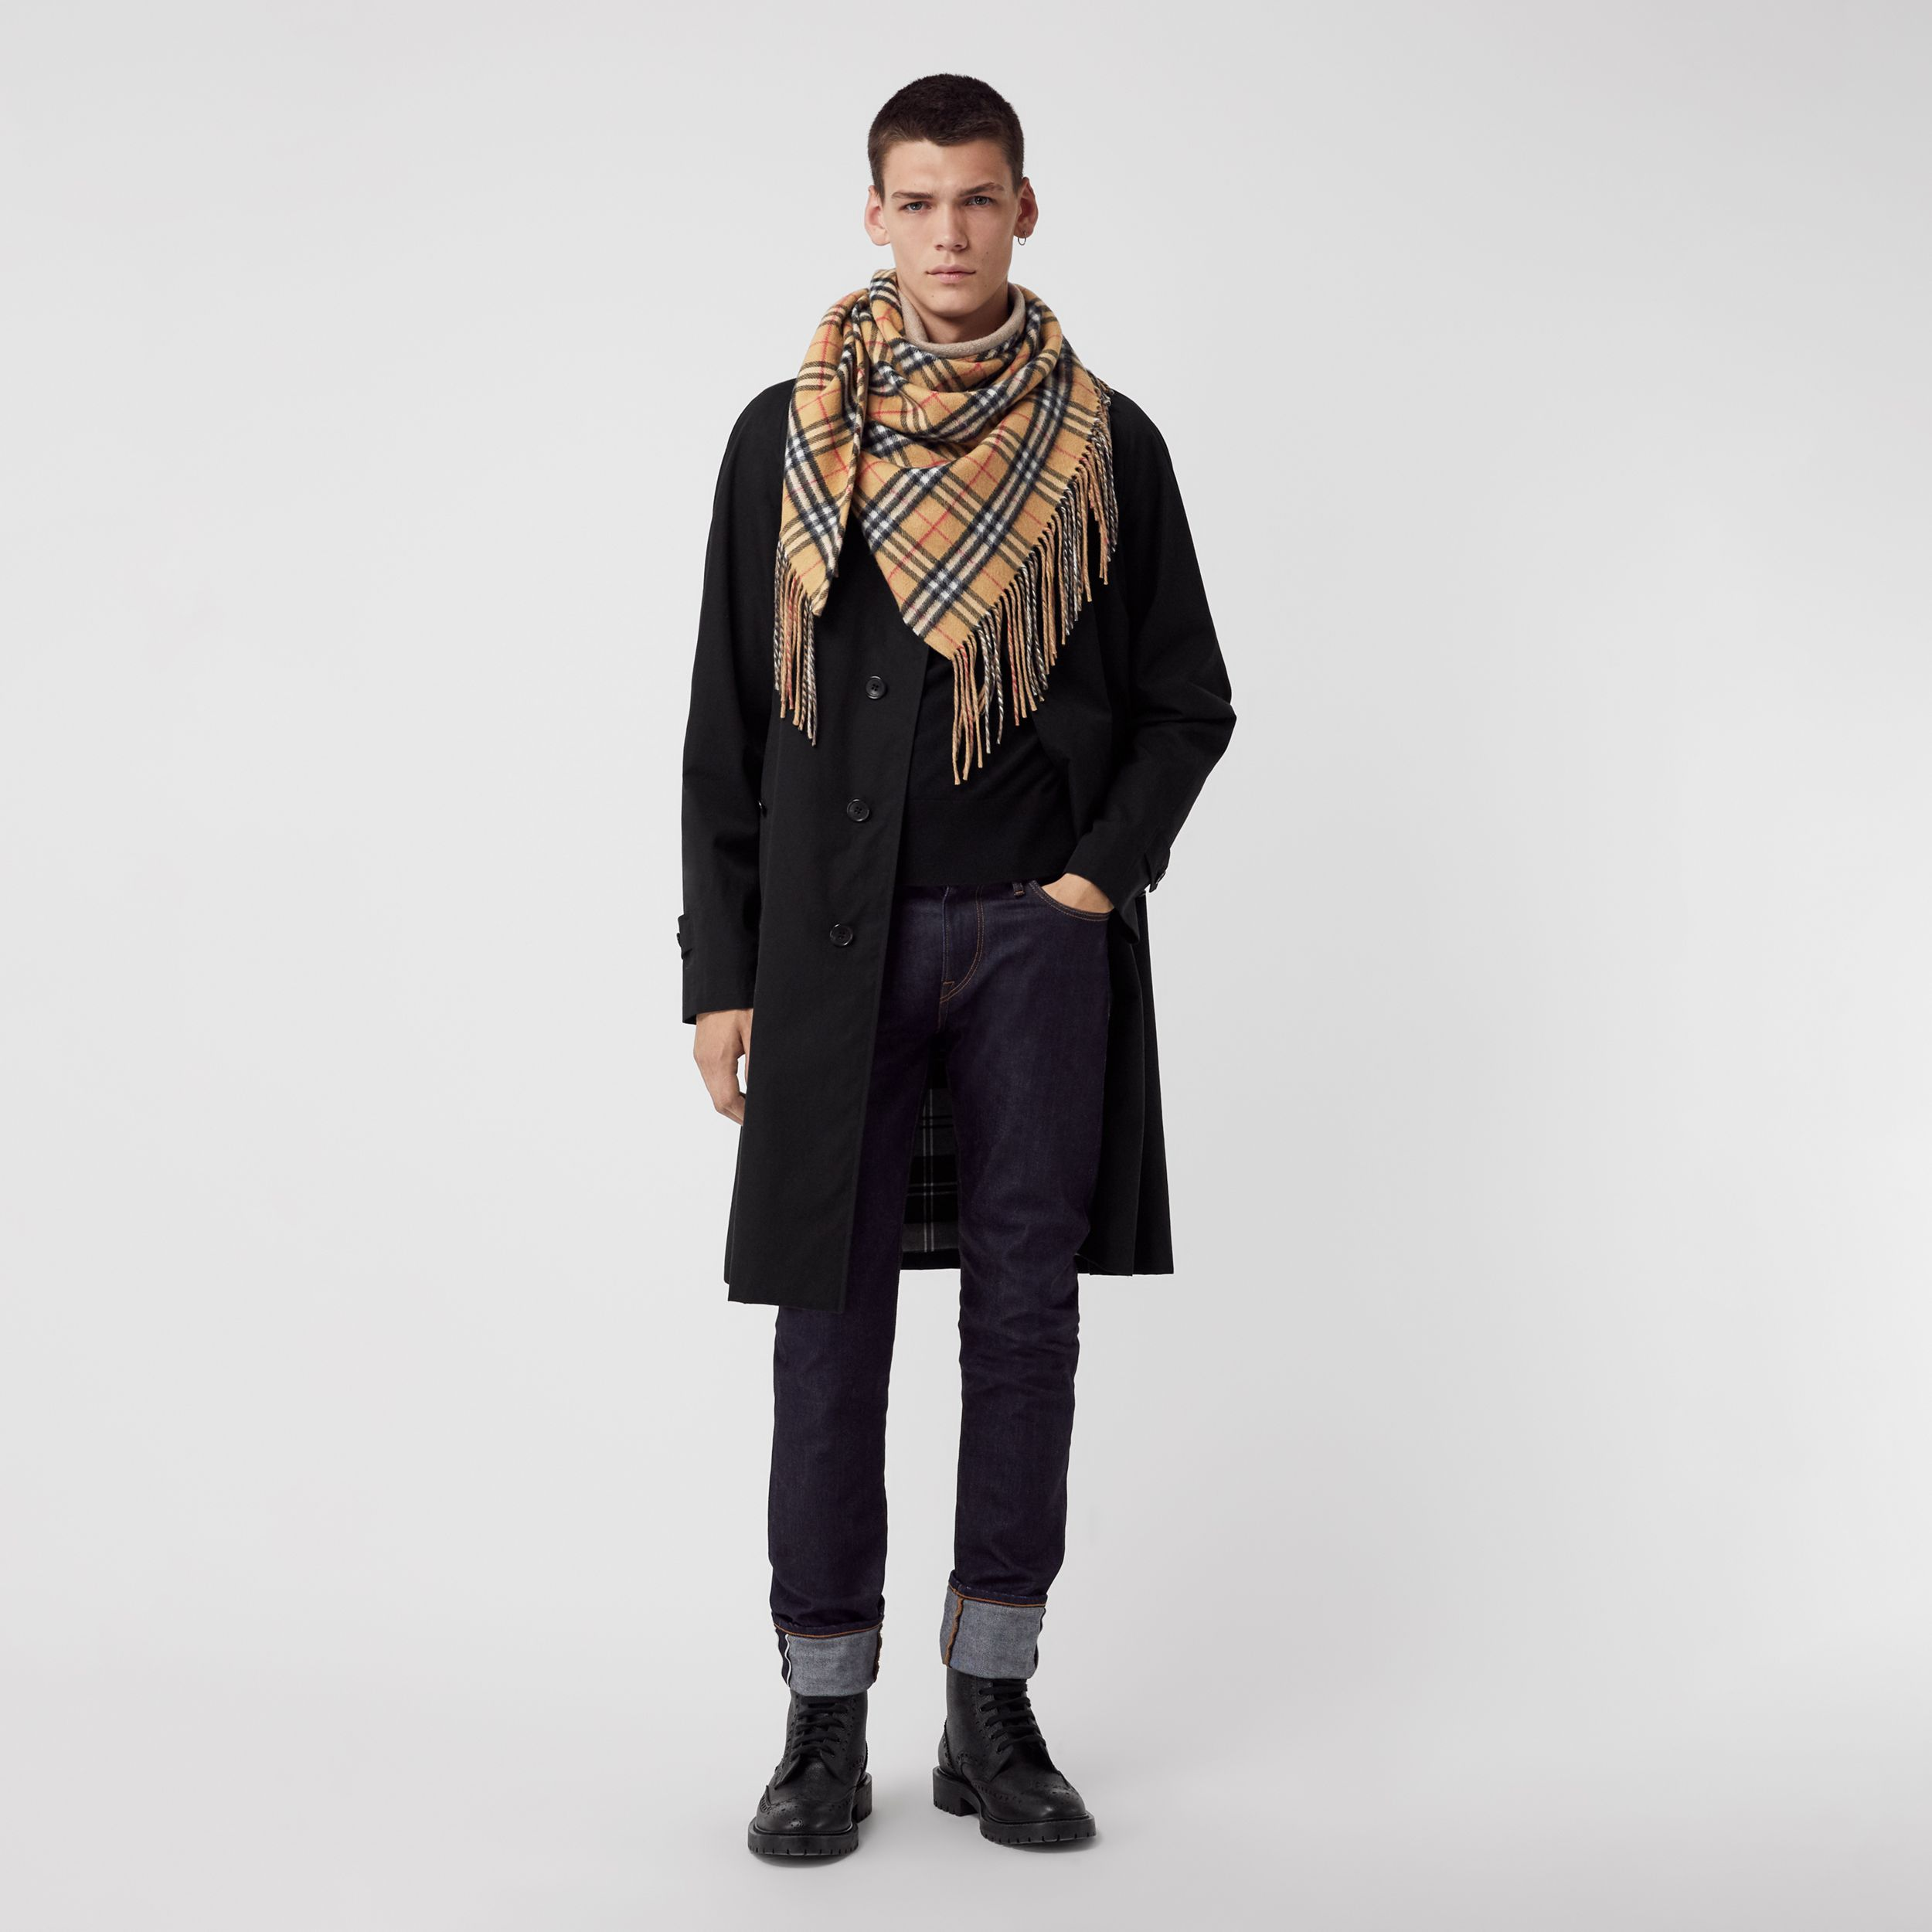 The Burberry Bandana in Vintage Check Cashmere in Sandstone - Men | Burberry Singapore - 4